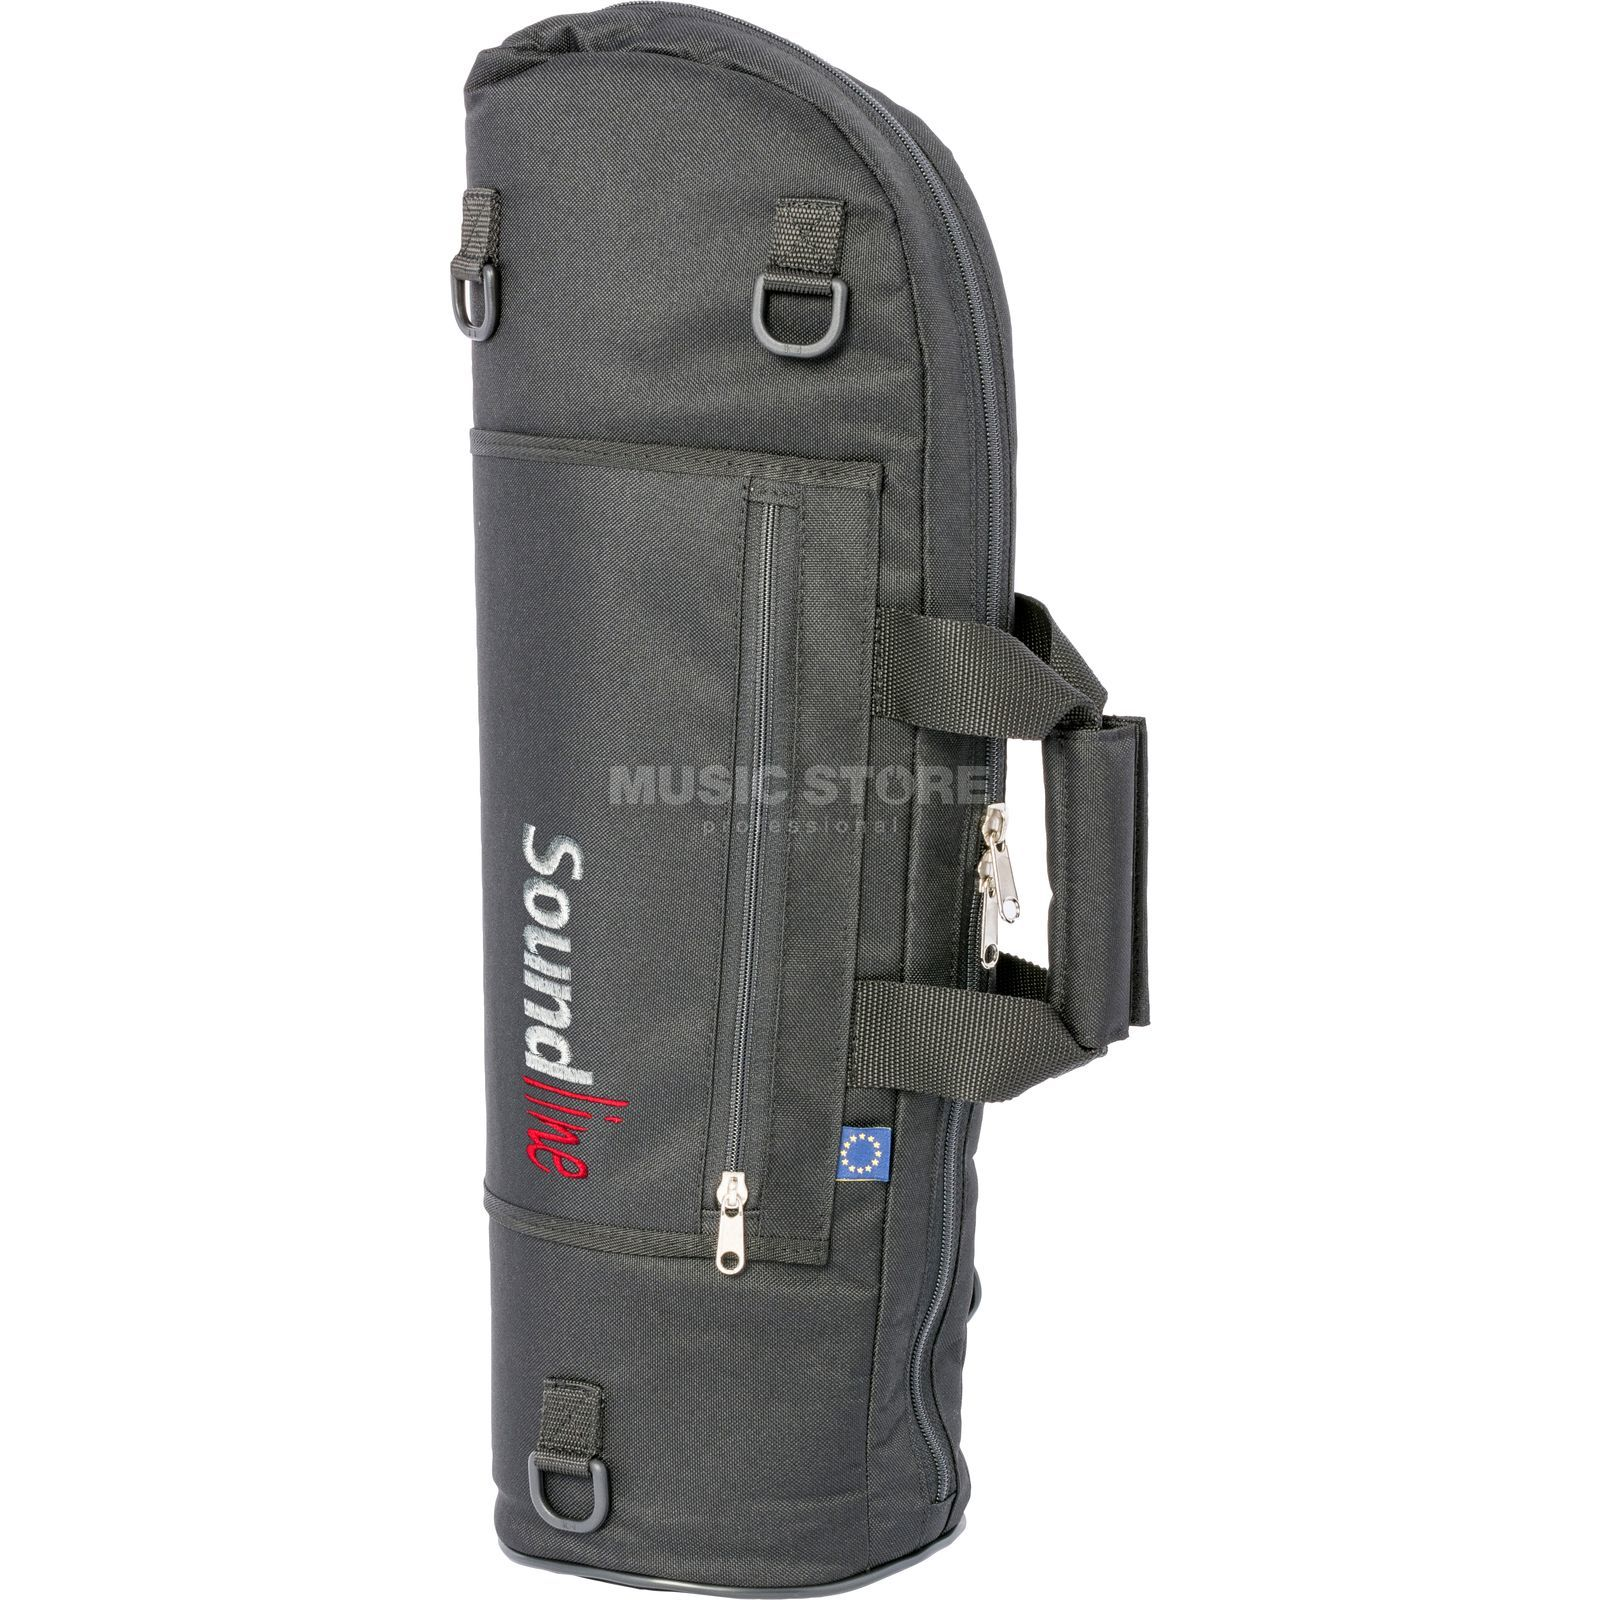 Arnolds & Sons Gigbag Trompete 594210 Imagen del producto